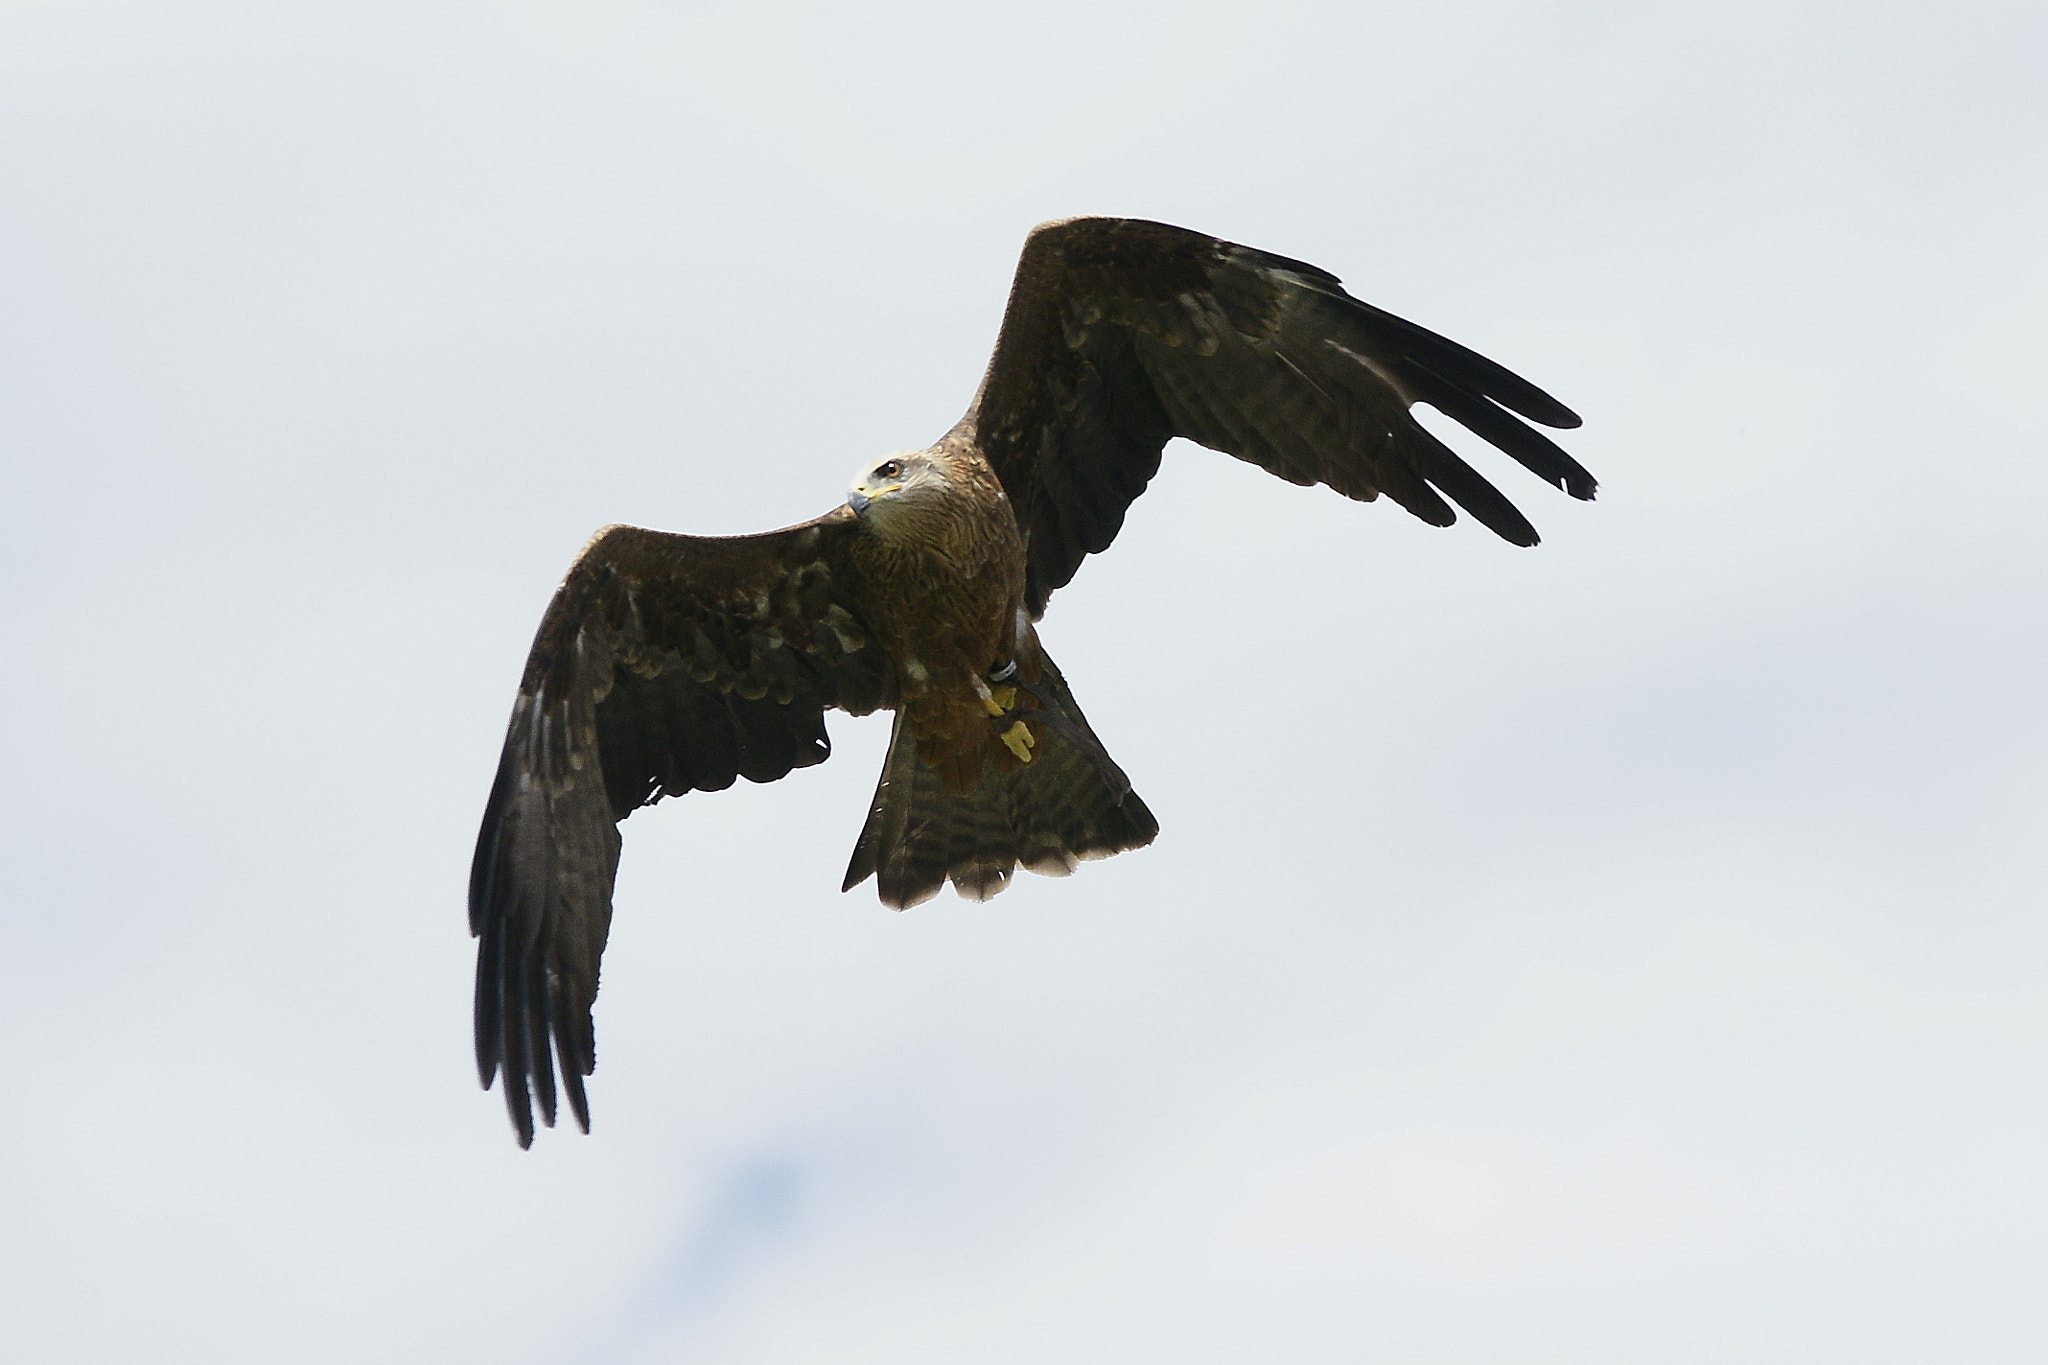 Photograph Eagle by Branko Frelih on 500px